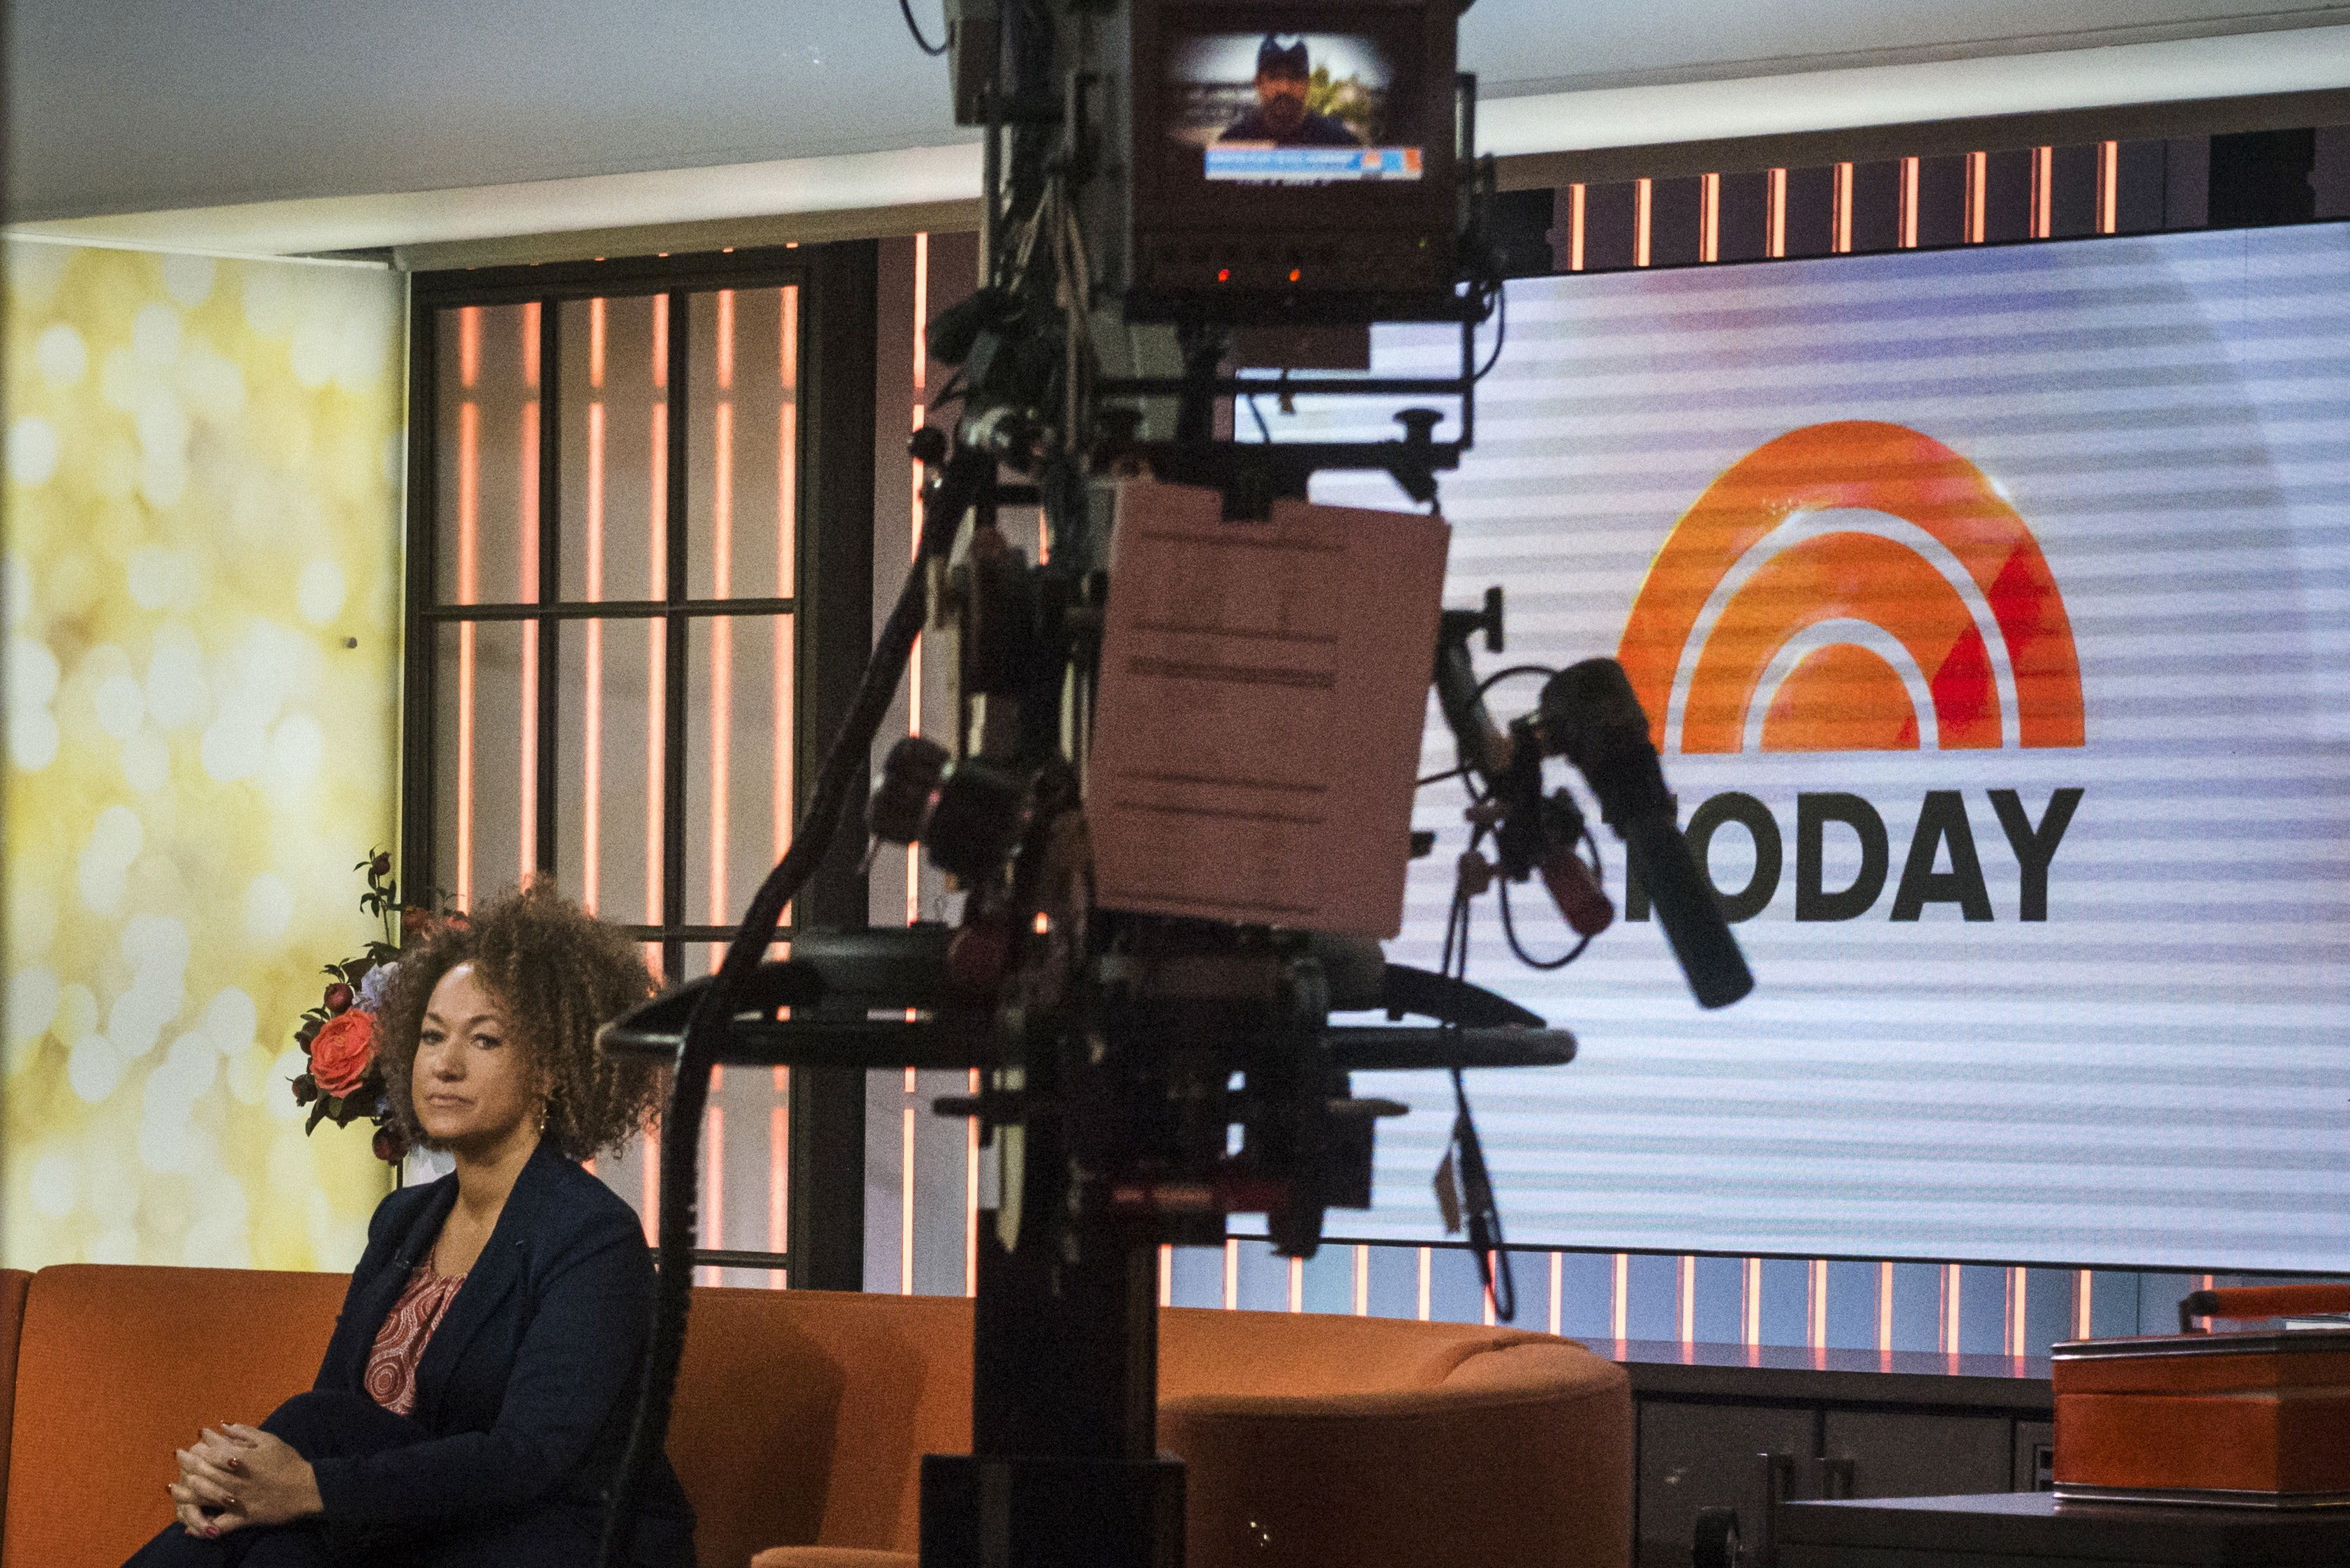 "Washington state civil rights advocate Rachel Dolezal is seen in the NBC's ""Today"" show studios in Manhattan, New York June 16, 2015. Dolezal, who has been accused of falsely claiming she is African-American, said on Tuesday she identifies as black and has been doing so since she was 5 years of age. Dolezal, in an interview on NBC's ""Today"" television show, said a major shift in her identity came when she was doing human rights work in Idaho and newspaper stories described her as transracial, biracial and black.  REUTERS/Stephanie Keith"